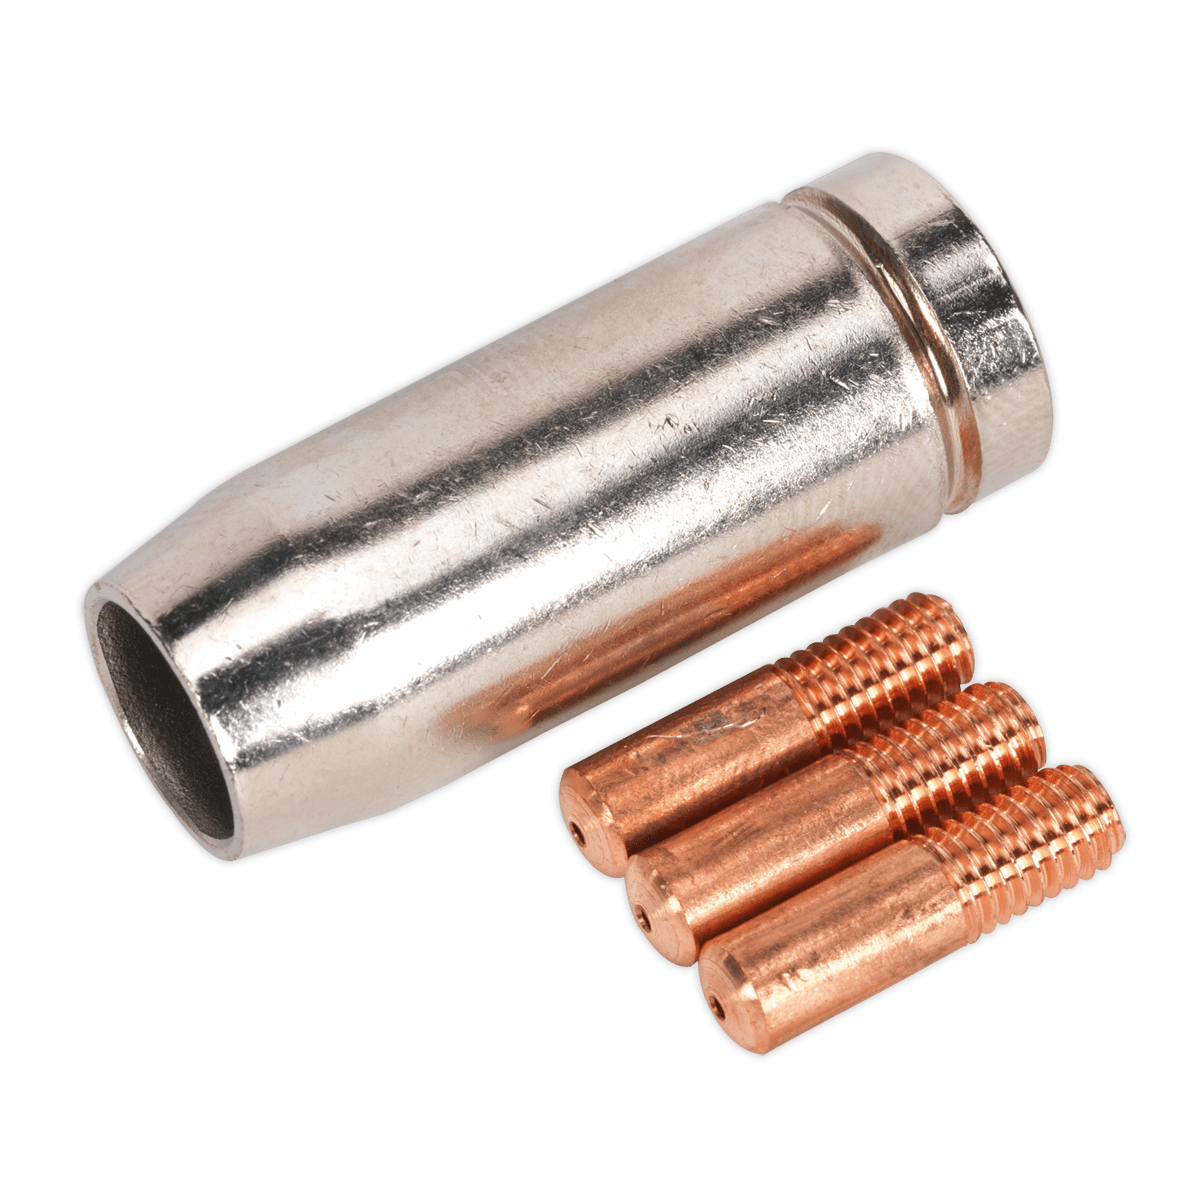 Sealey Conical Nozzle x 1 Contact Tip 0.8mm x 3 MB14 MIG954   Pack of three 0.8mm contact tips and one conical nozzle suitable for use with our range of Mightymig® welders.   toolforce.ie